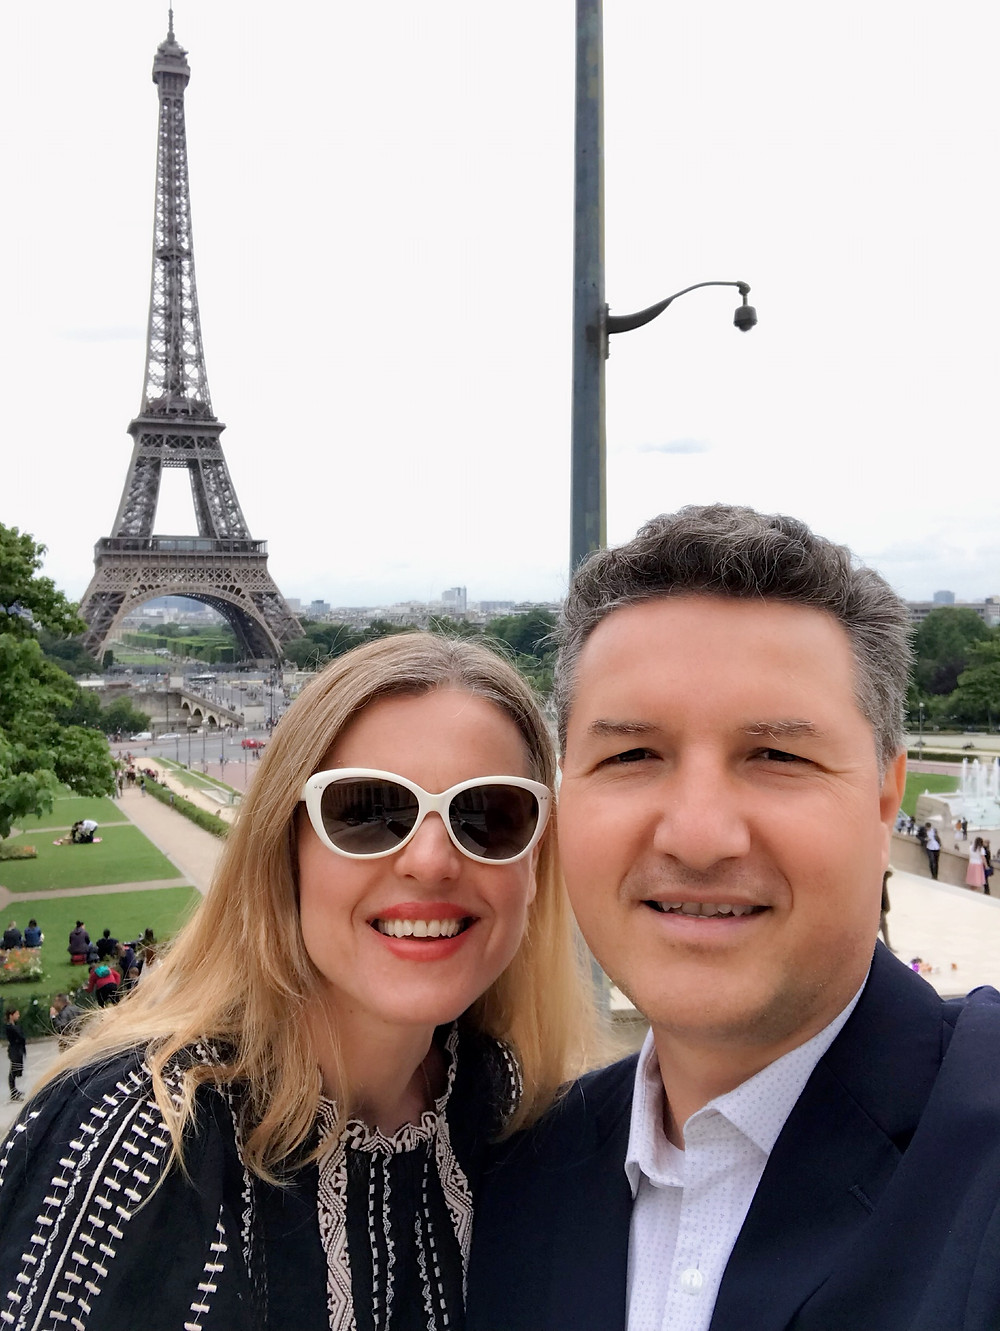 woman and man with Eiffel Tower in background